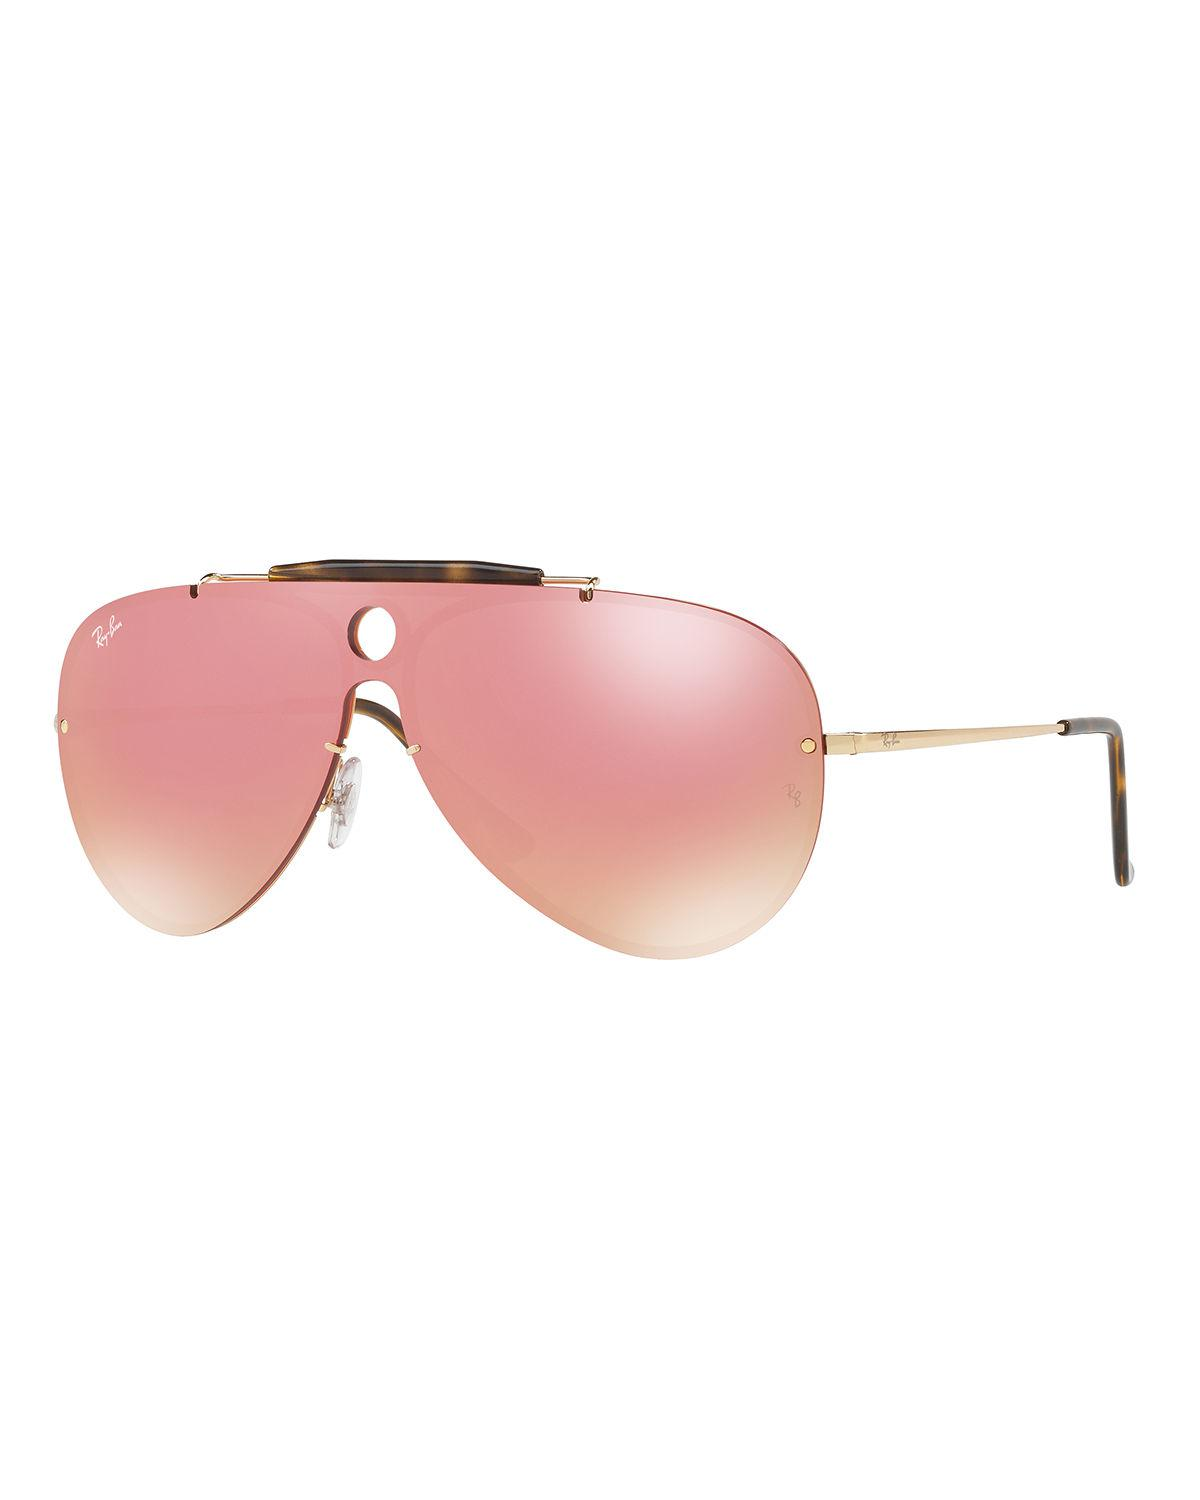 c829100c6 Lyst - Ray-Ban Blaze Shooter Flat Shield Sunglasses in Pink